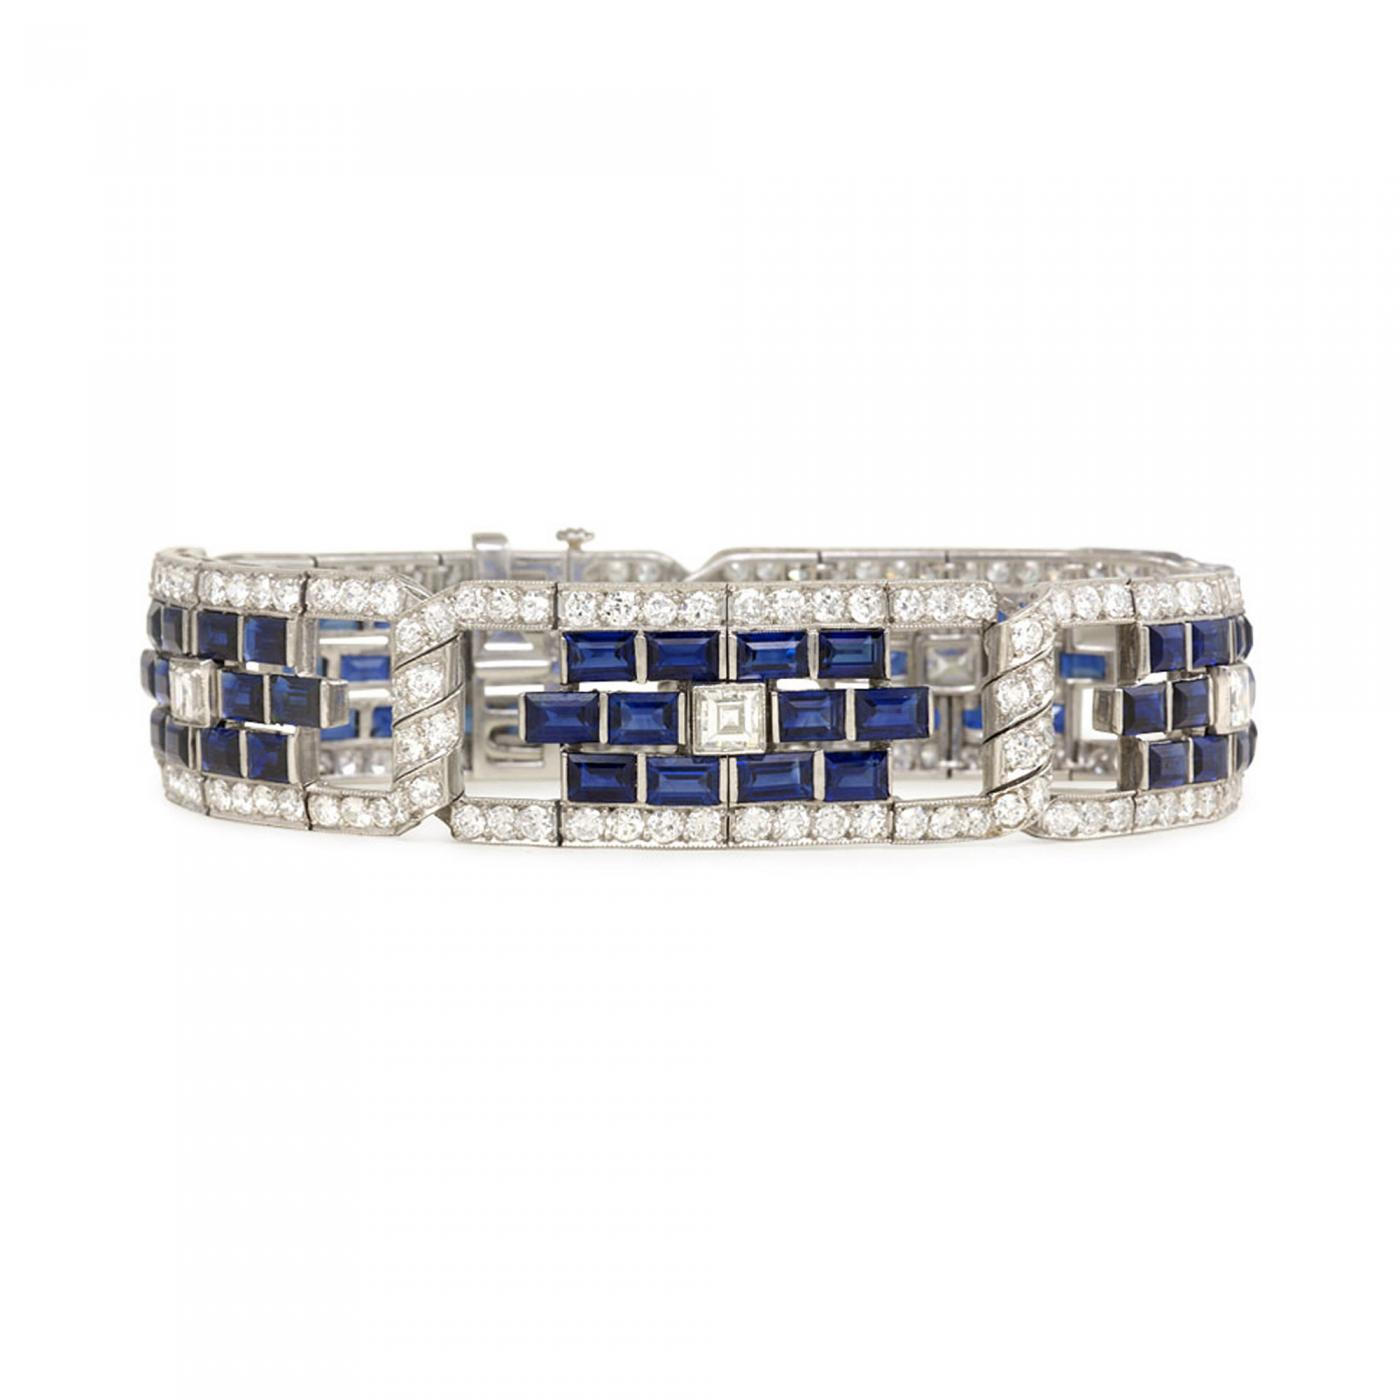 bracelet silver sapphire created diamonds in sapphires sterling with diamond